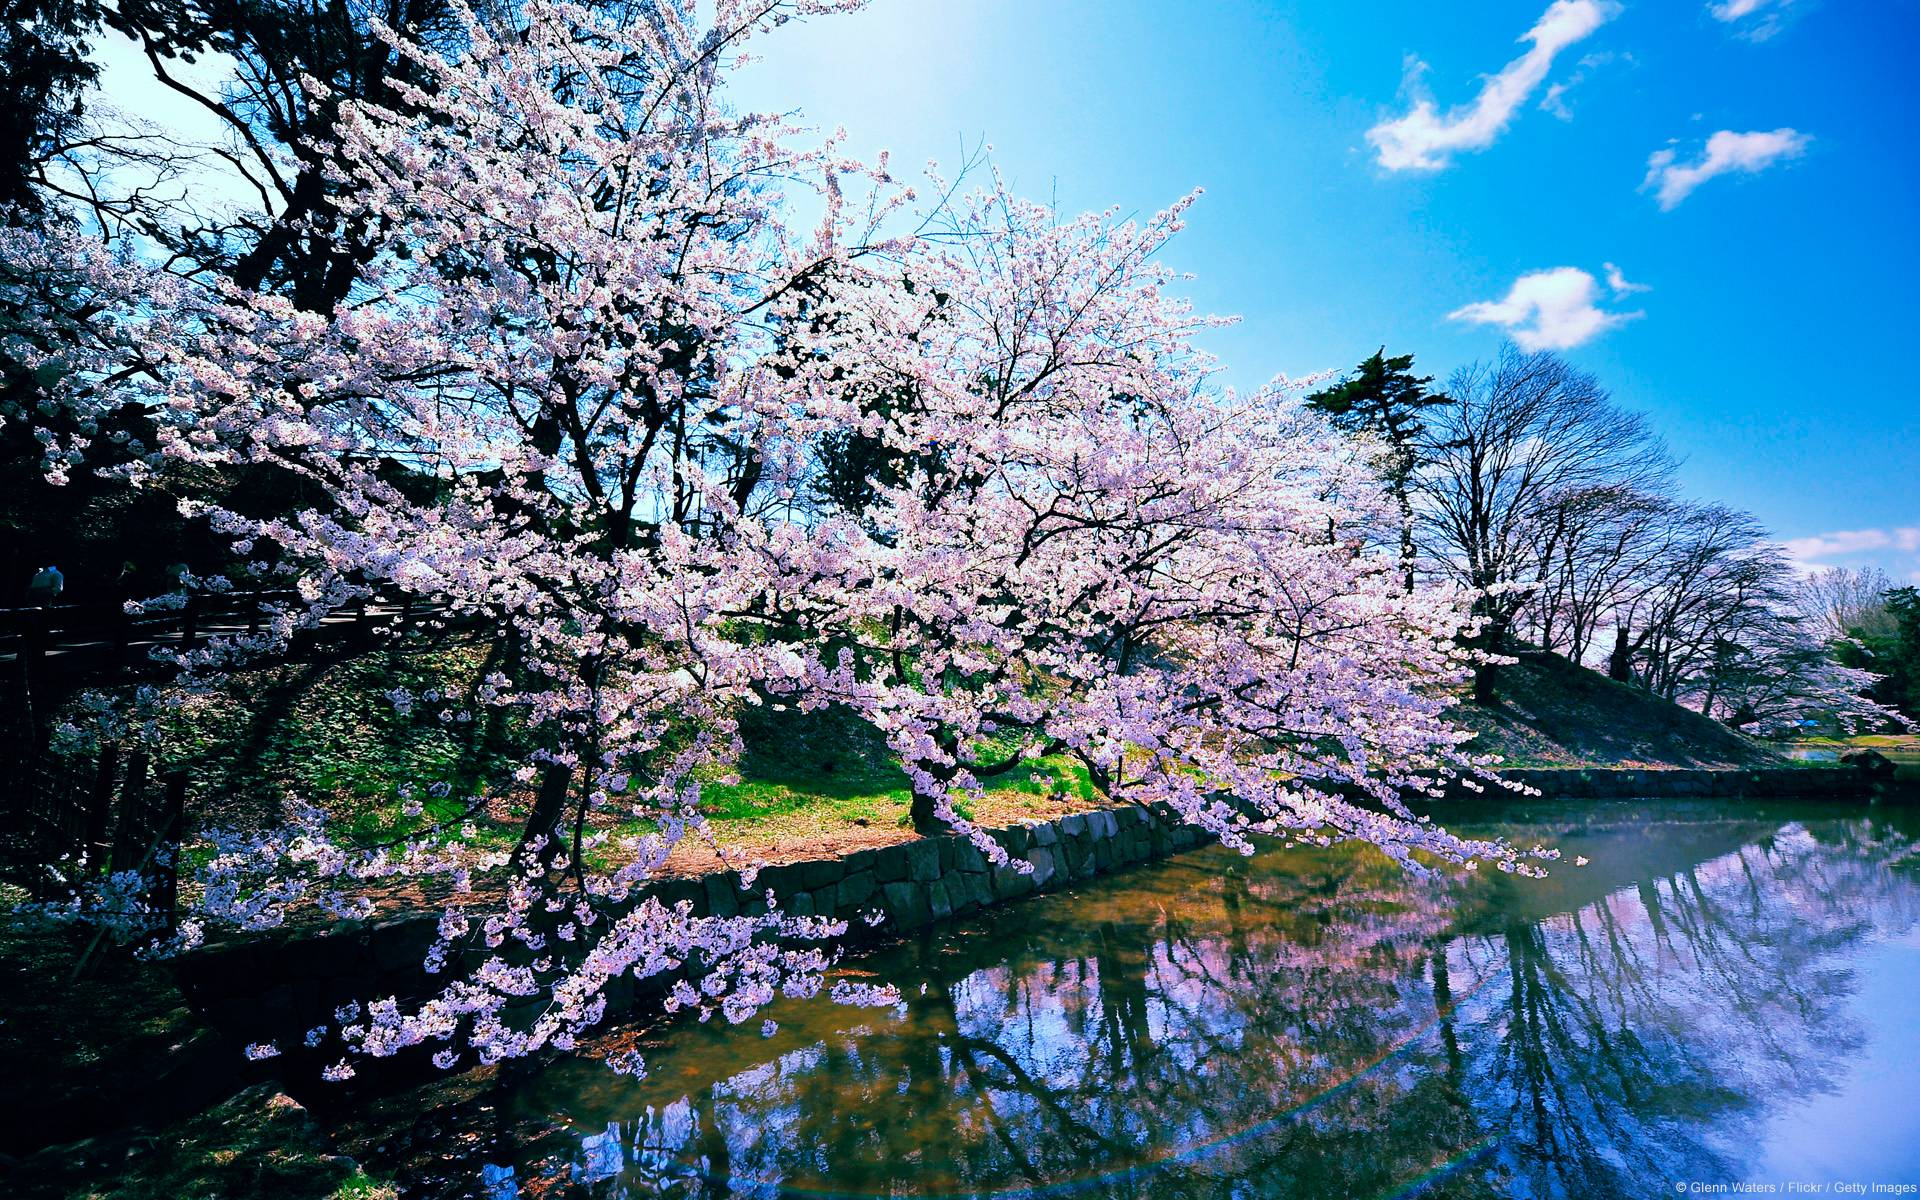 fascinatingcherryblossomtreewallpapercollectionhdwallpaperscherry